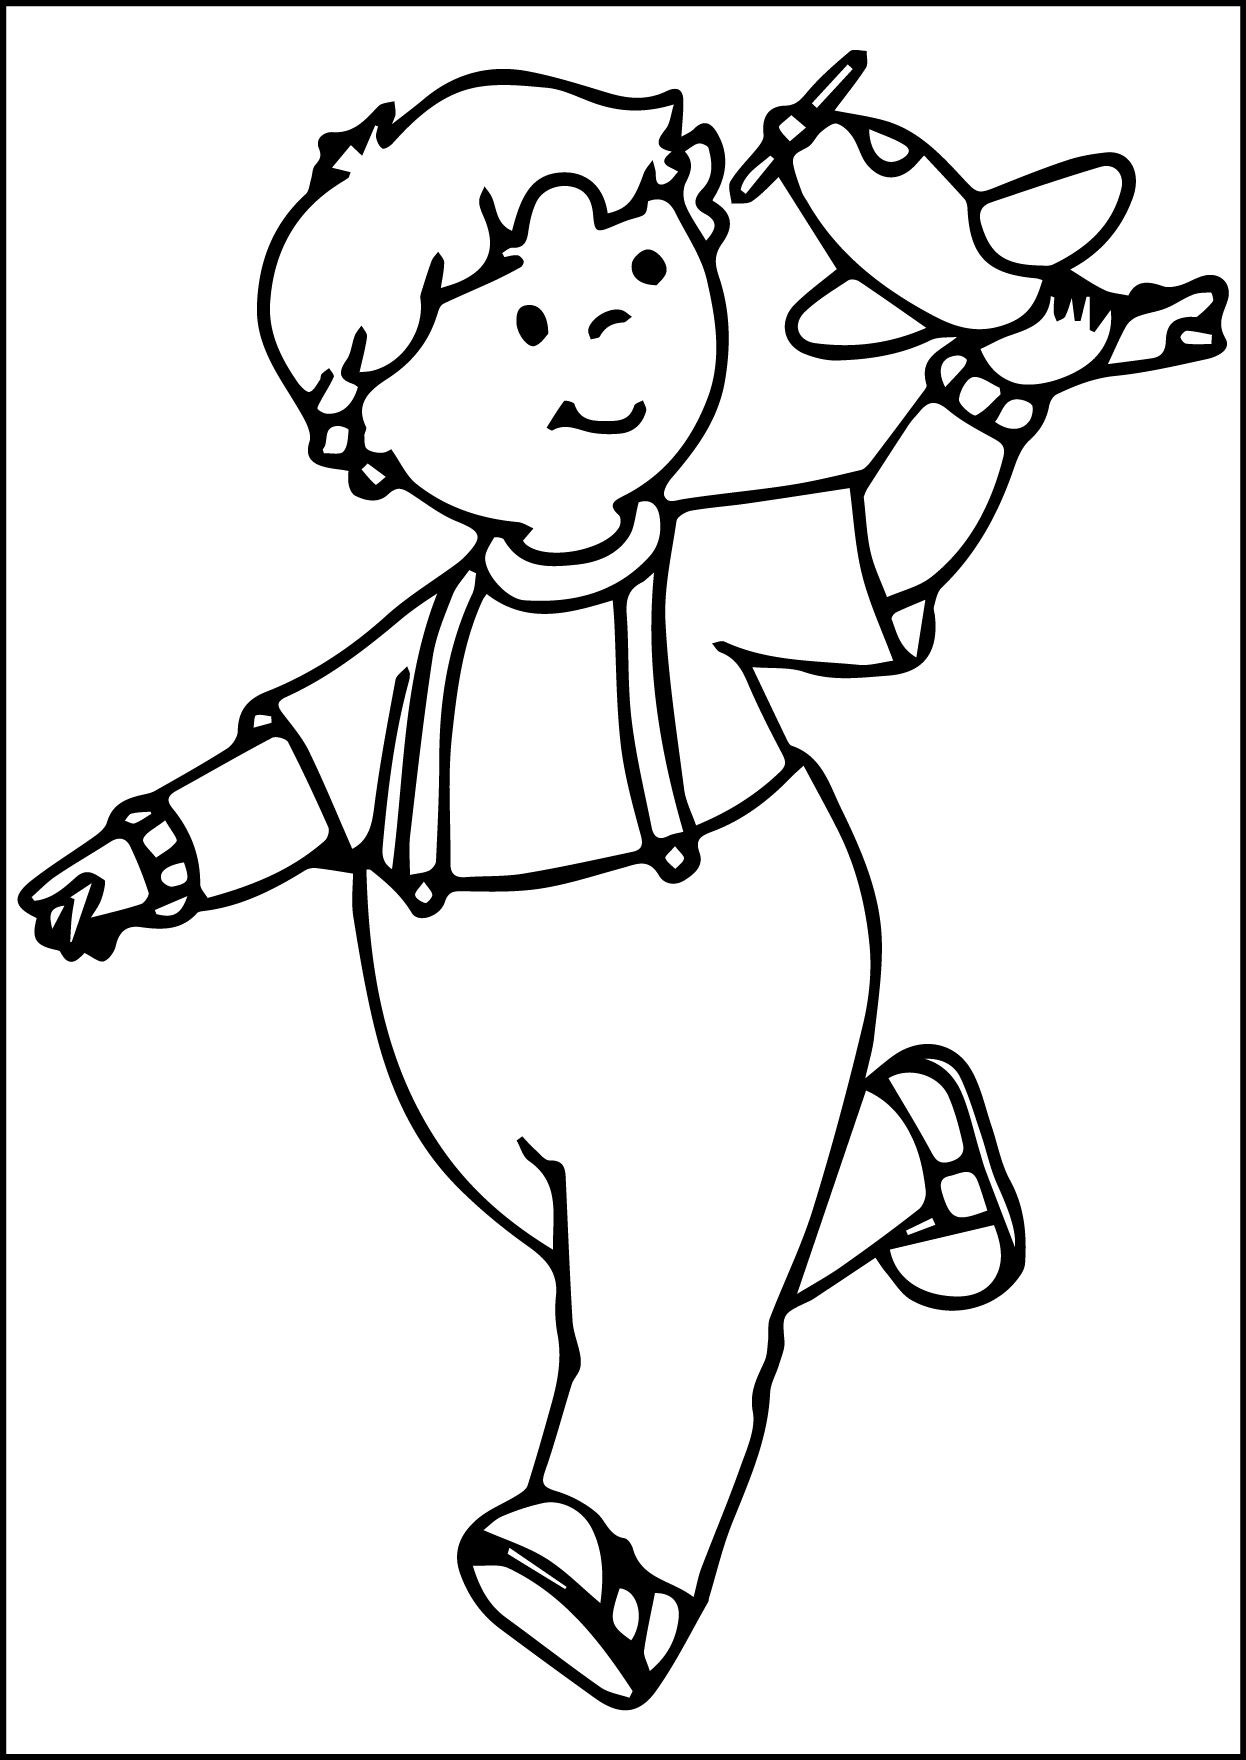 Coloring pages caillou - Cool Caillou Play Plane Coloring Page Check More At Http Www Mcoloring